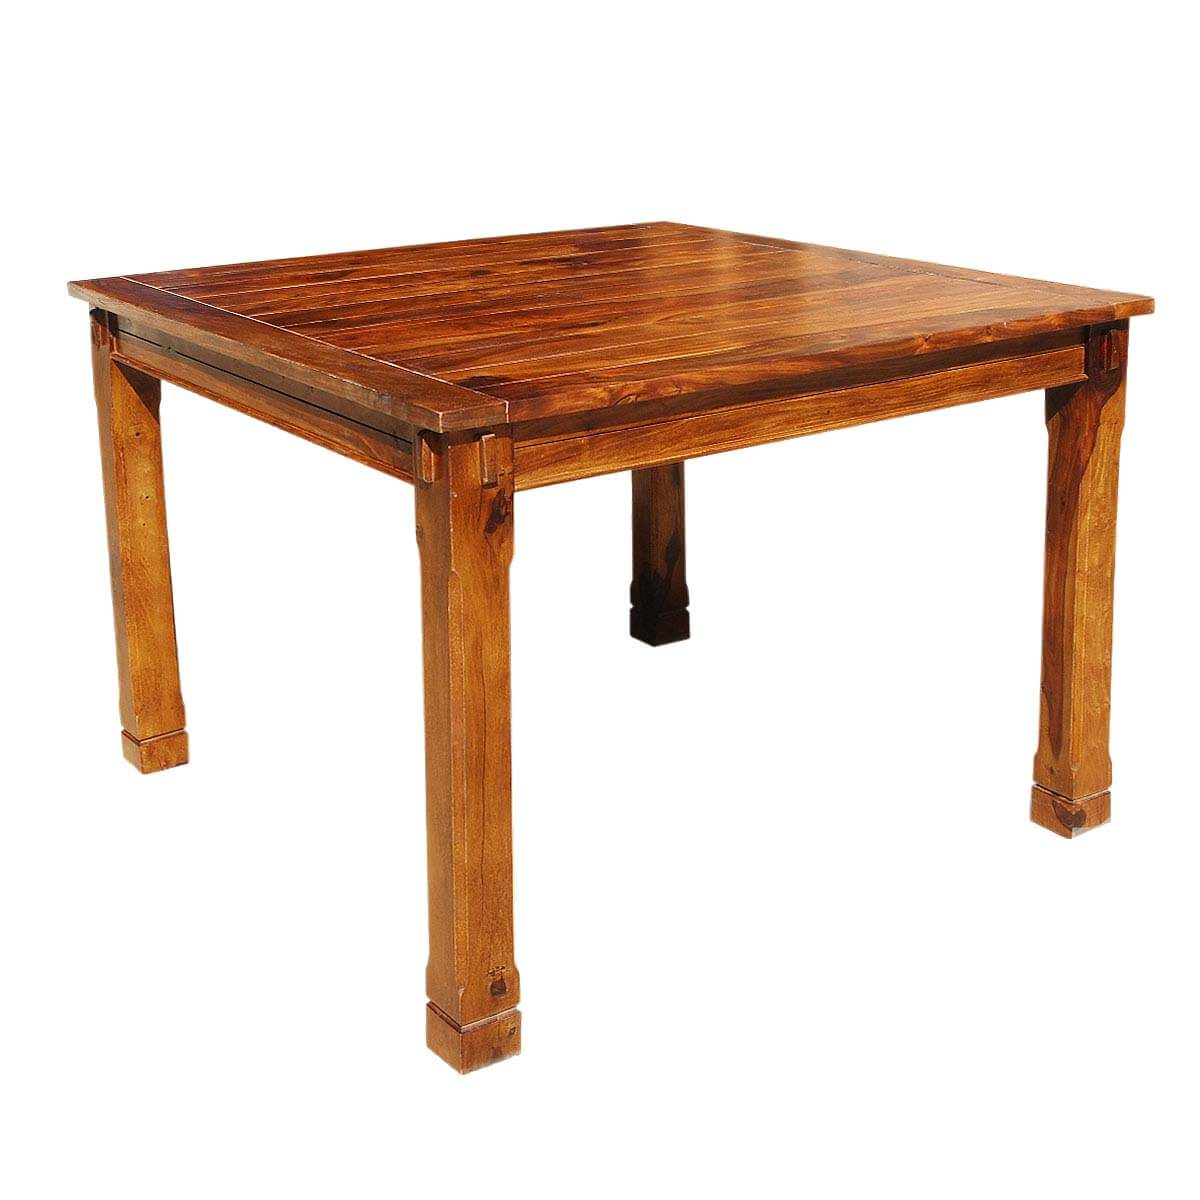 Rustic solid wood square counter height dining table for Solid wood dining table